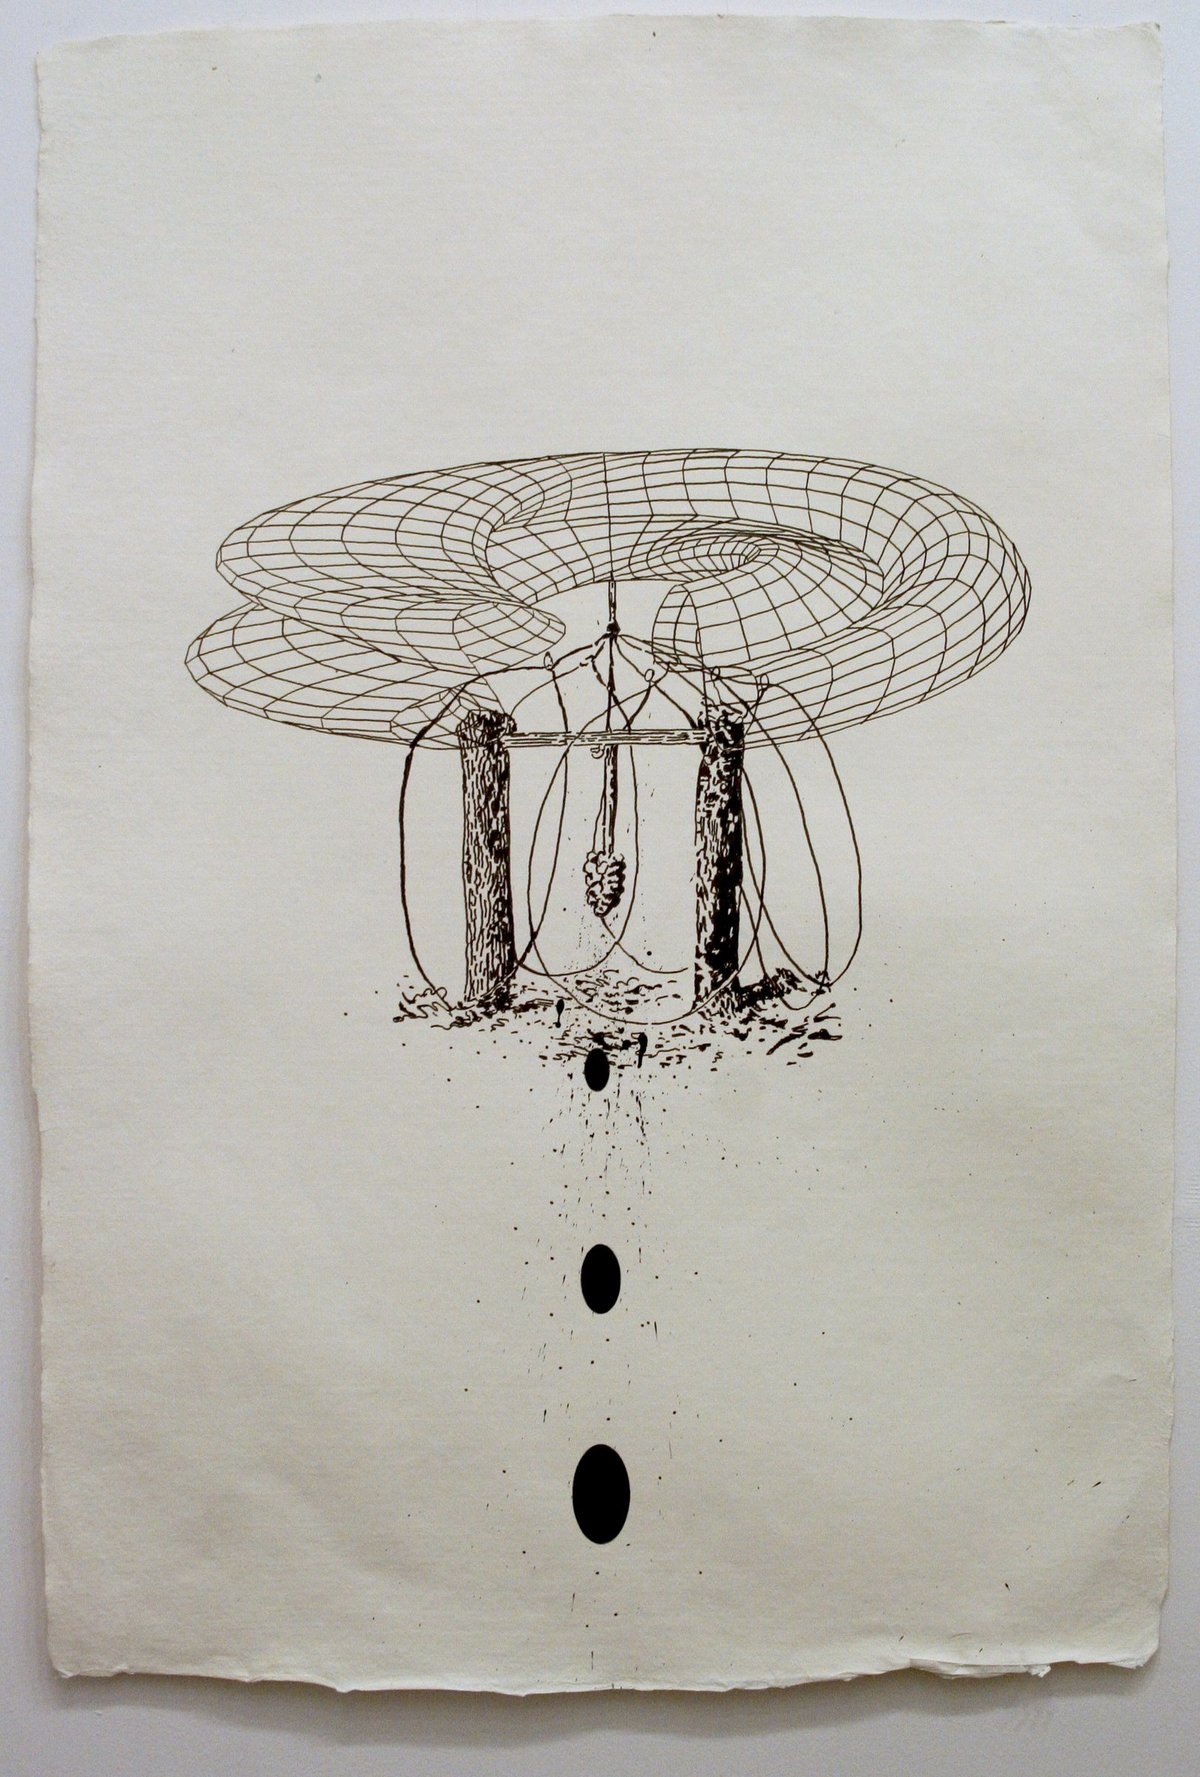 James Cullinane, Snare Drawing 1, 2012